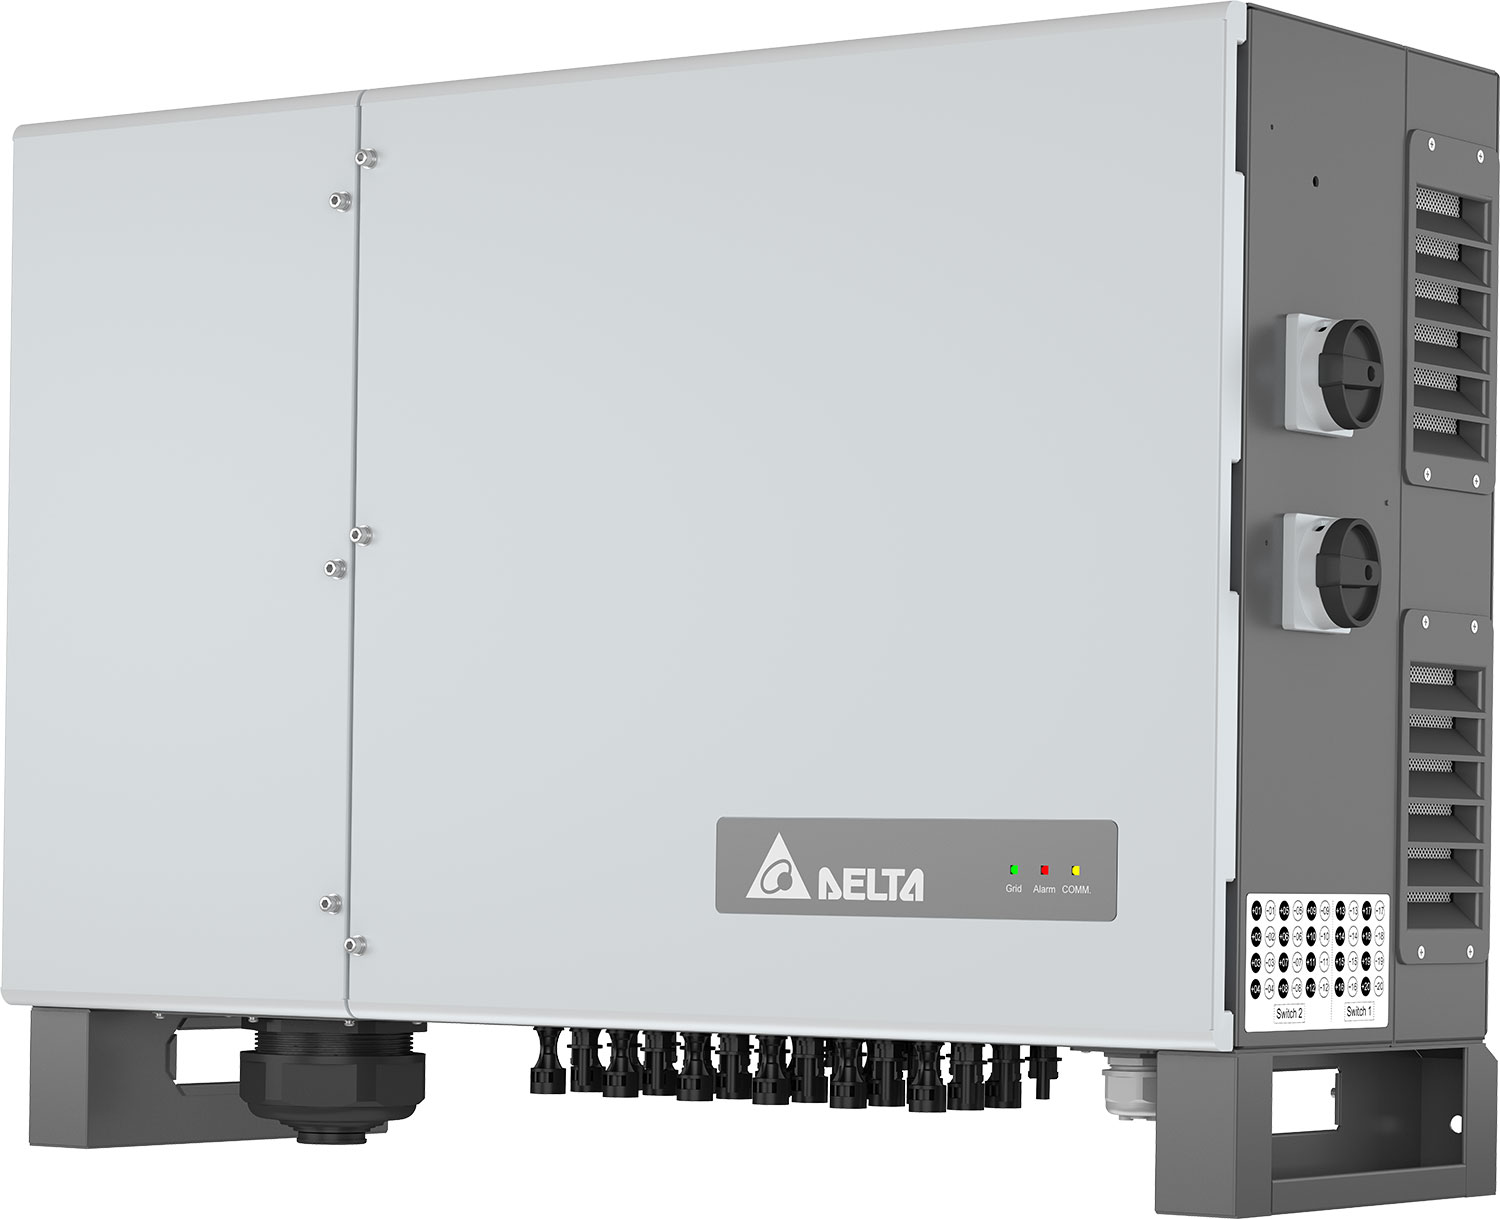 New solar inverter M125HV from Delta for large ground-mounted solar PV installations></a><a class=